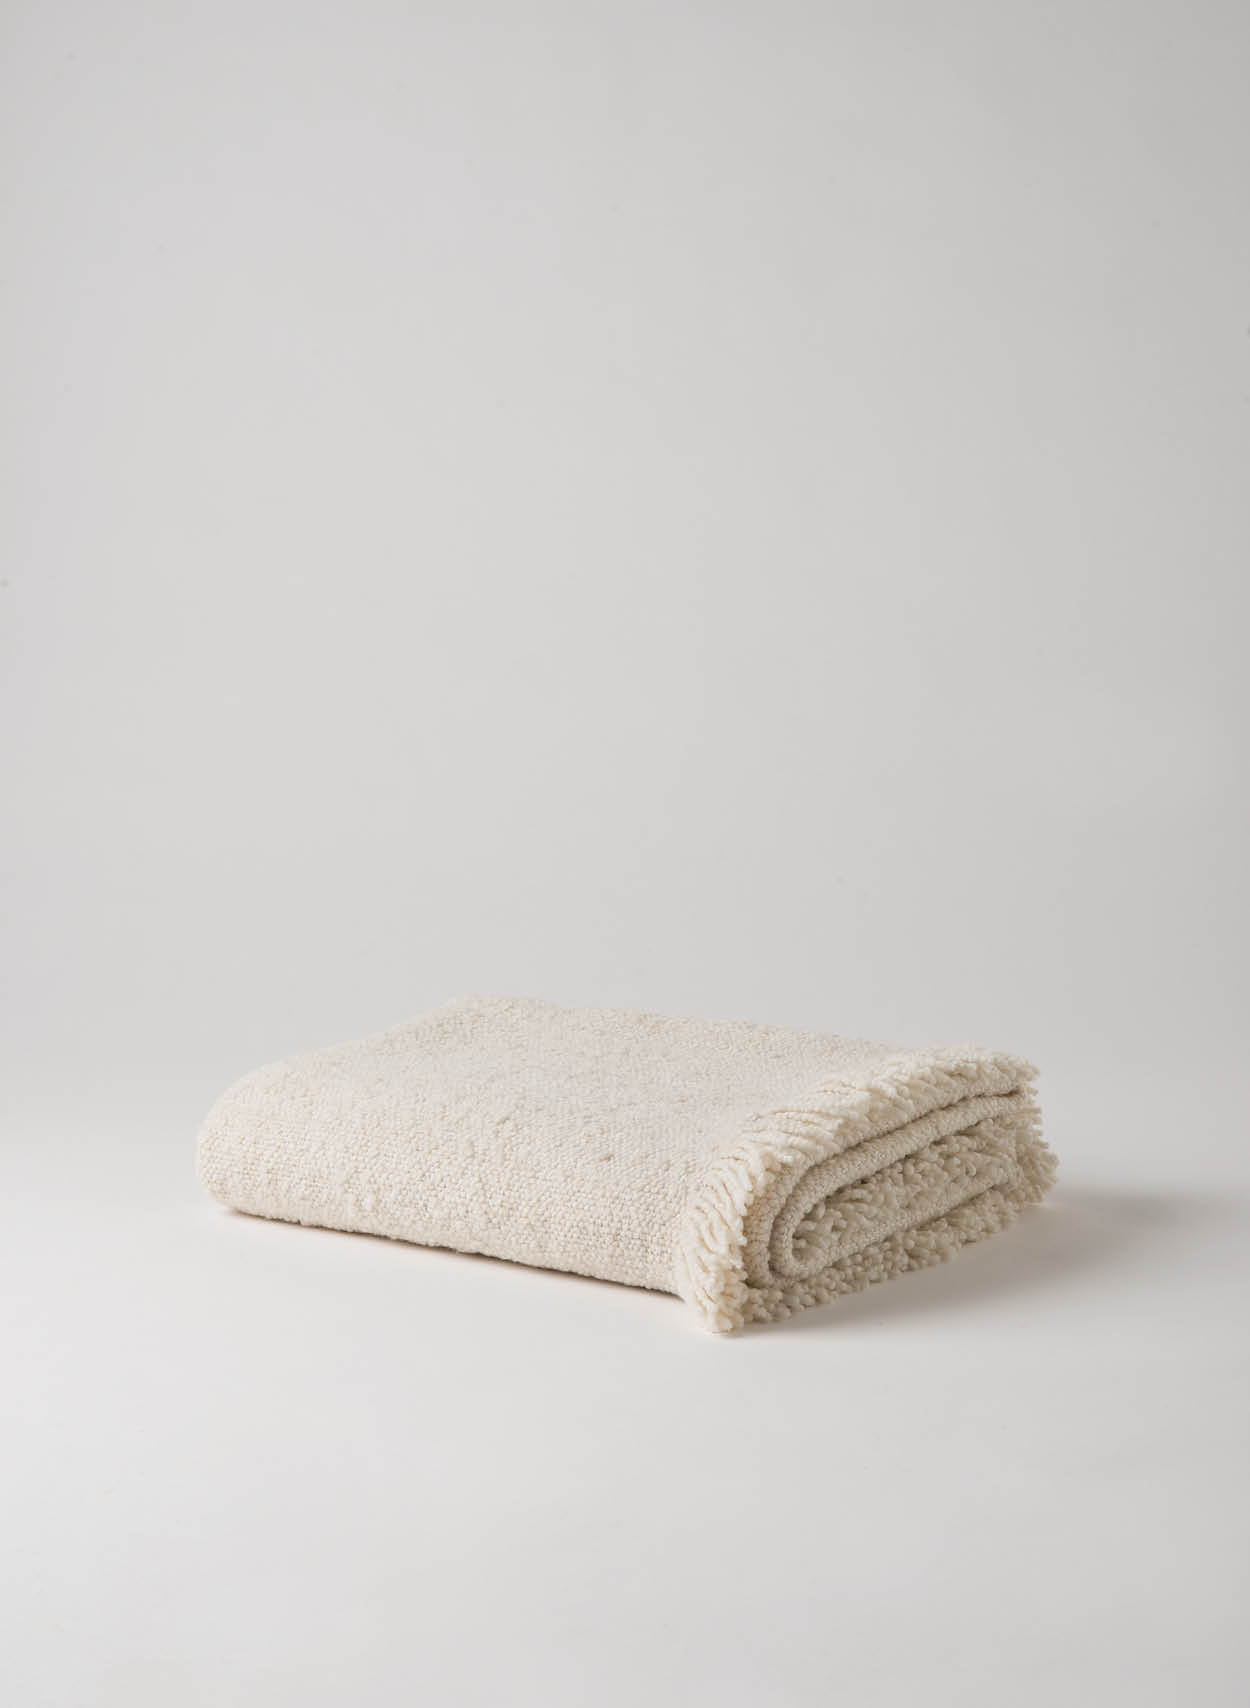 Lazo Woven Throw $149